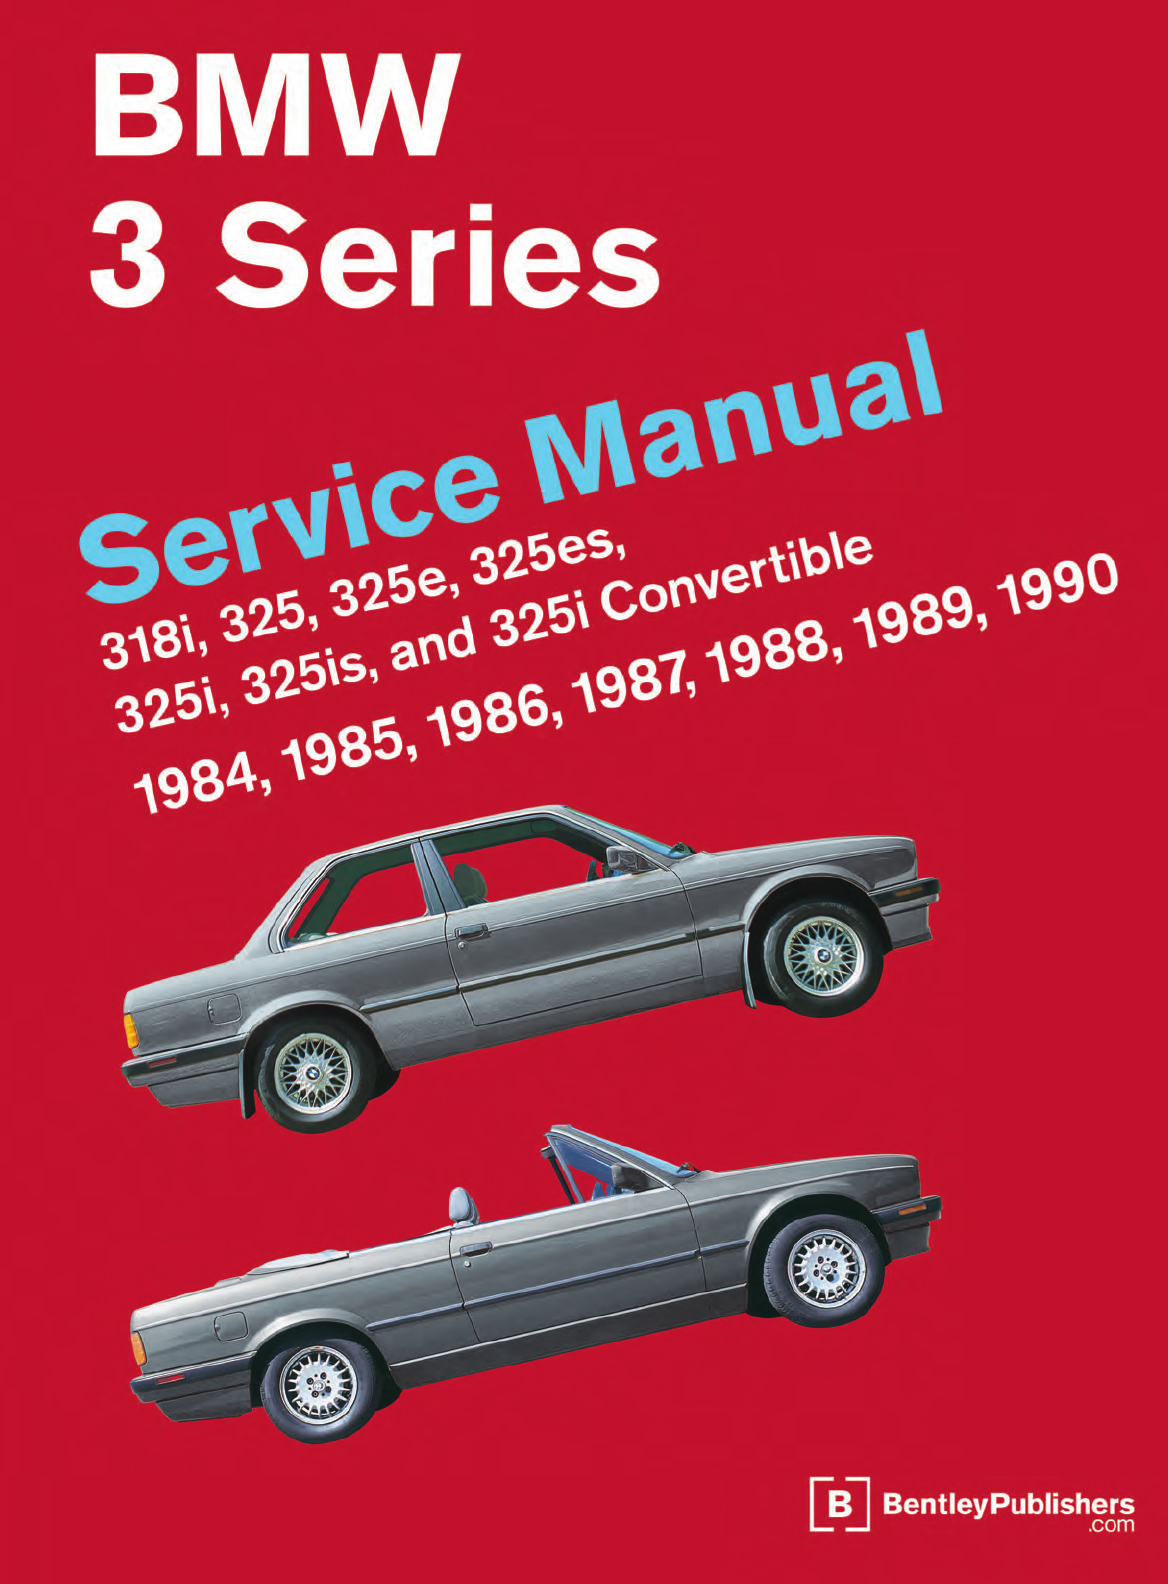 See our other Alpina B3 Manuals: